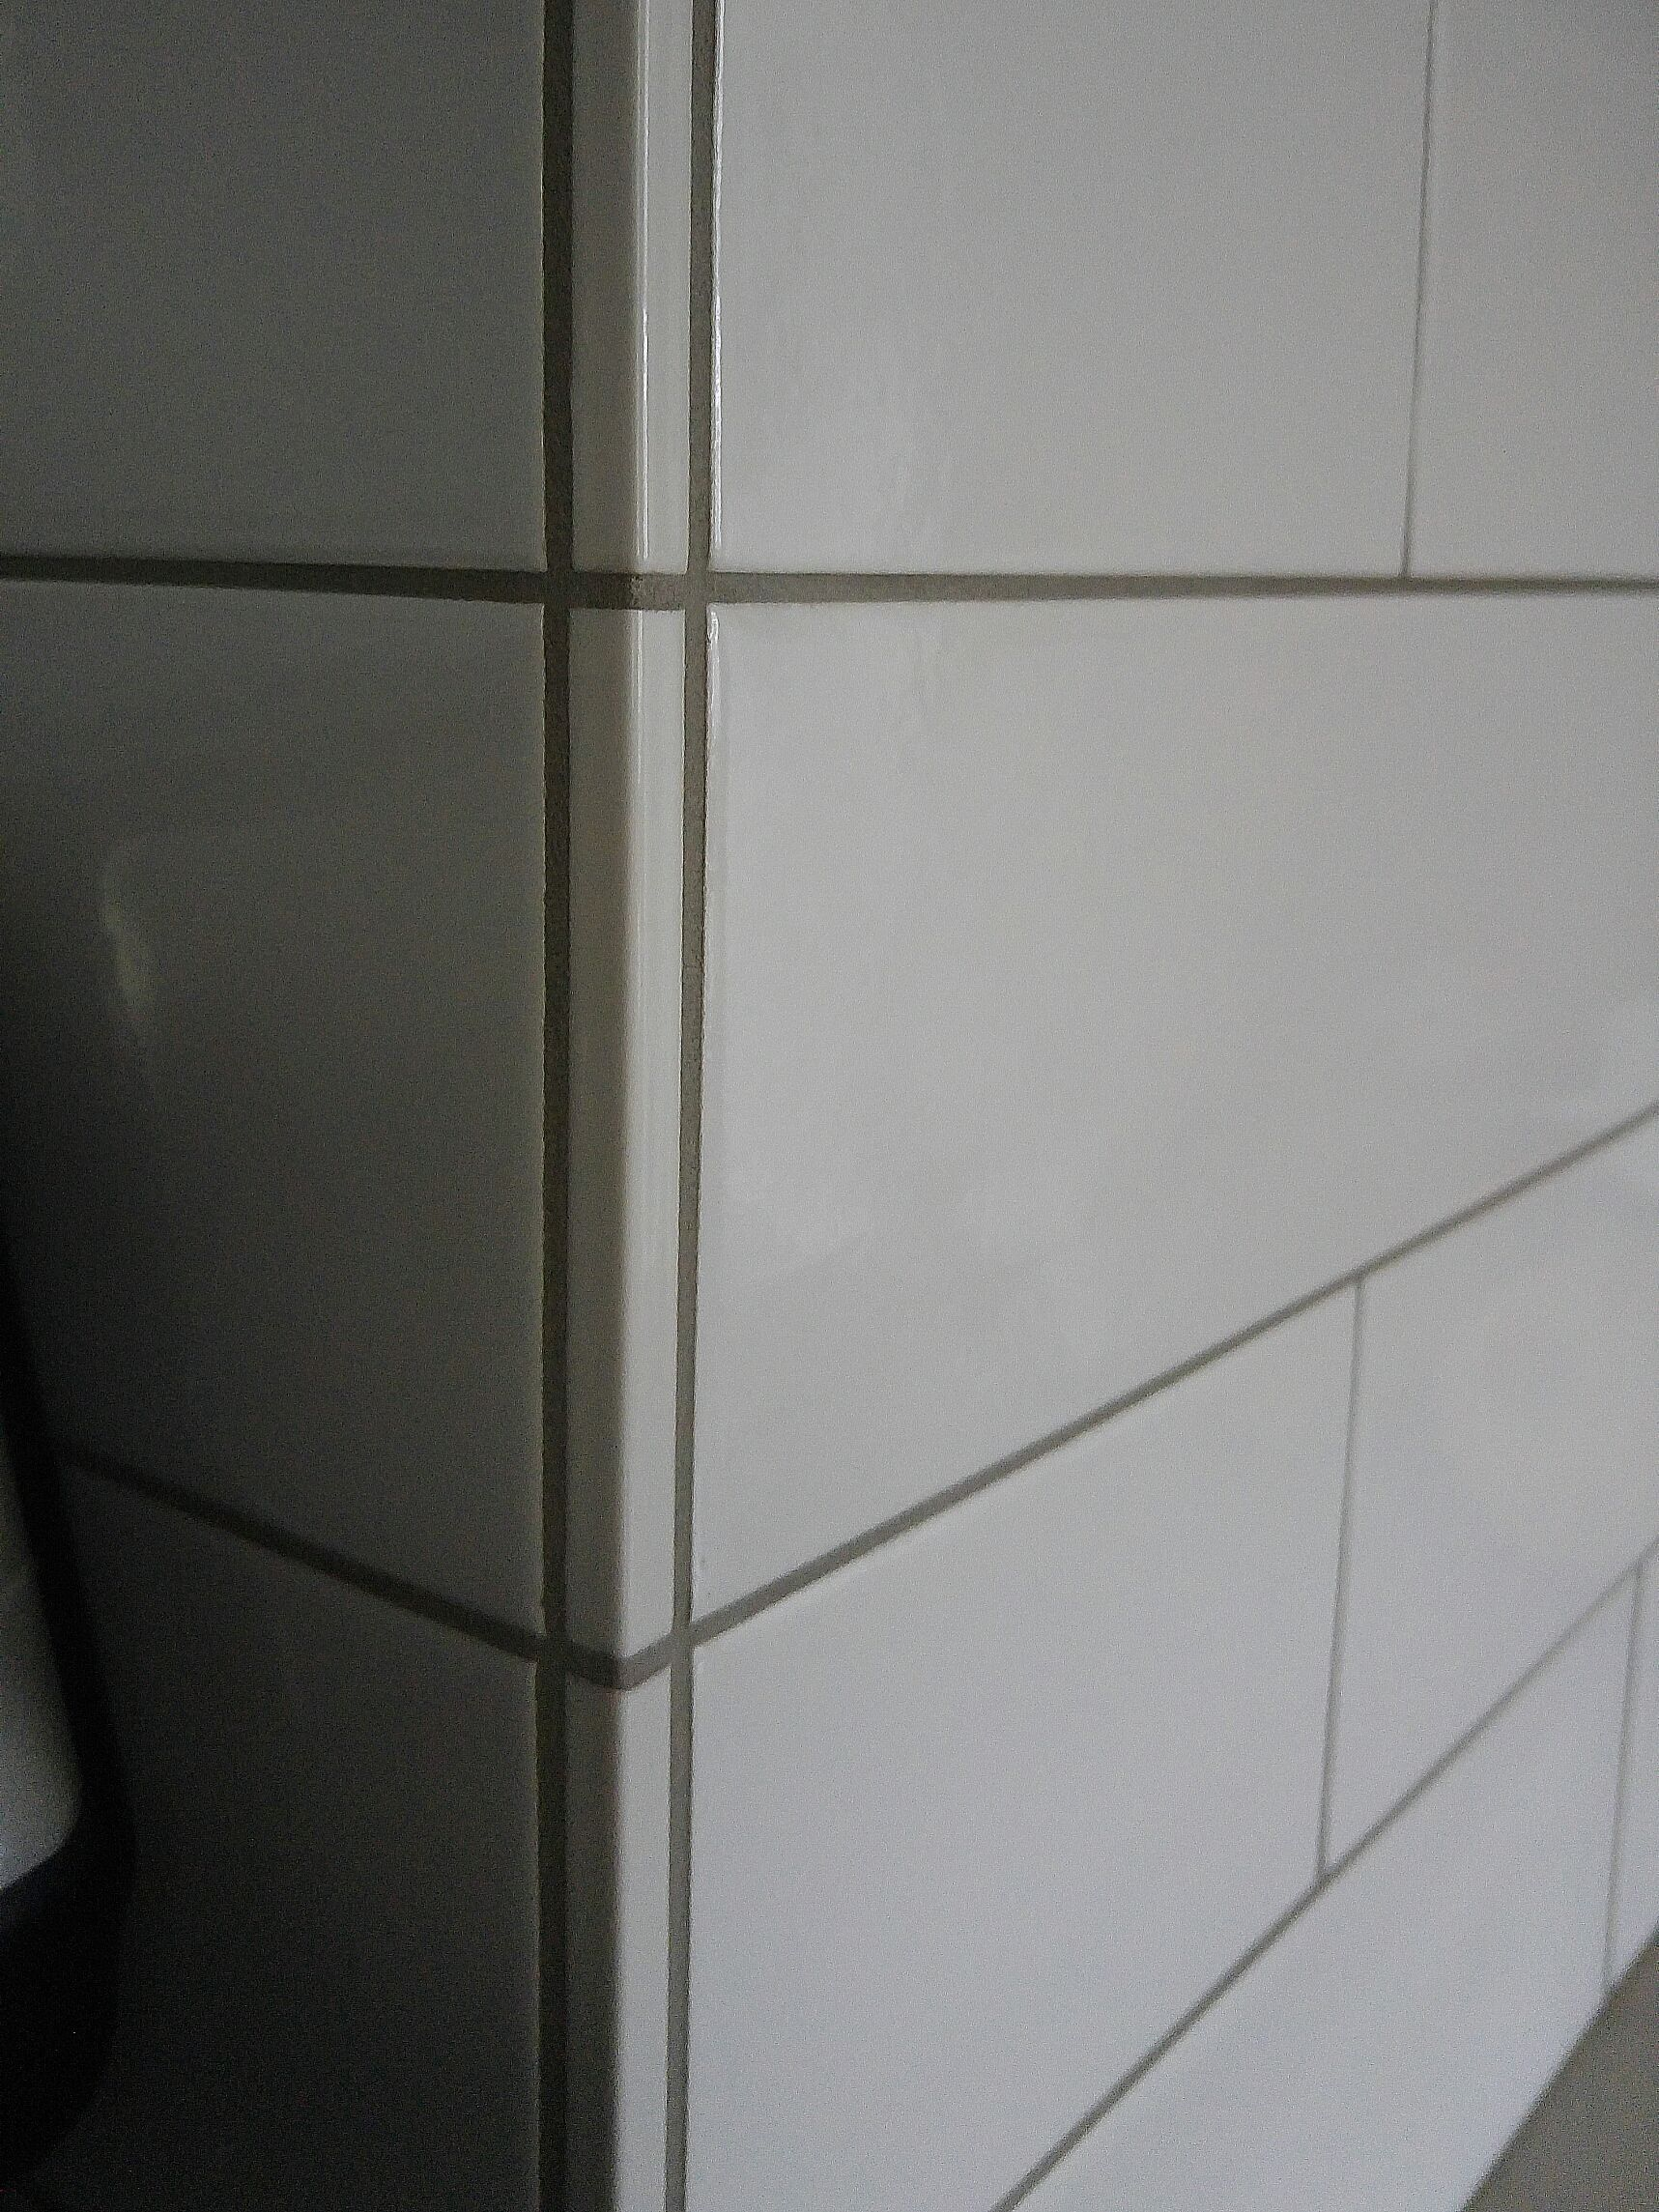 Image Result For Corner Subway Tile Without Bullnose Tiles Tile Repair Bullnose Tile